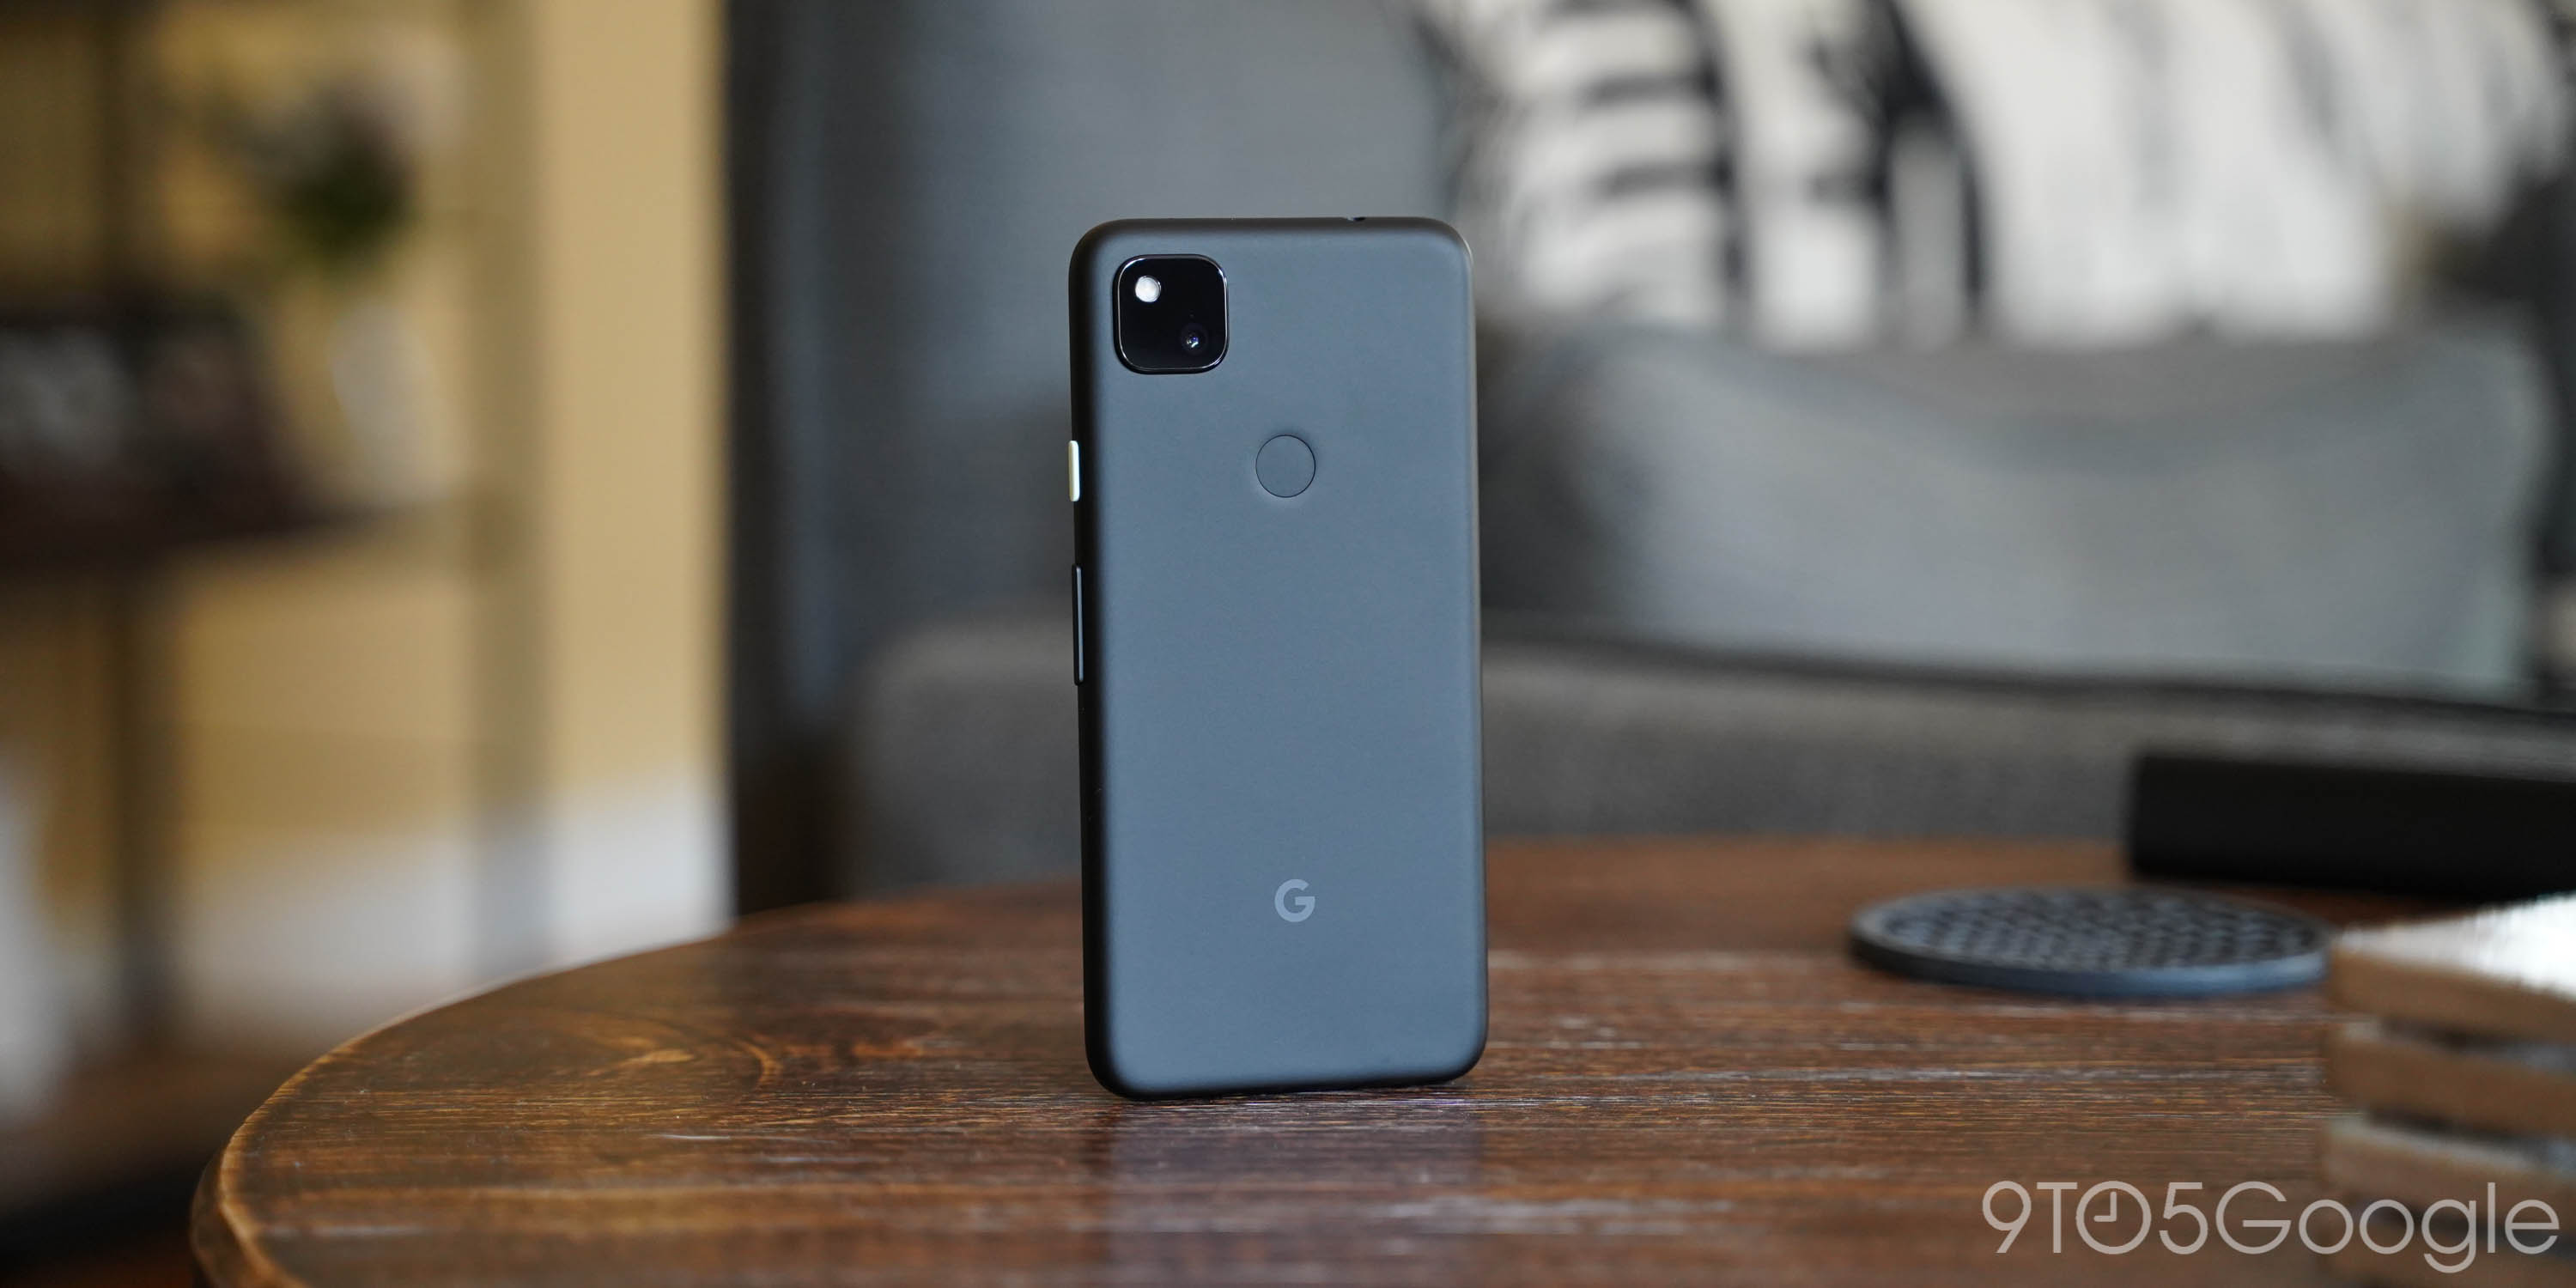 Pixel 4a Review: Superb smartphone on a budget - 9to5Google